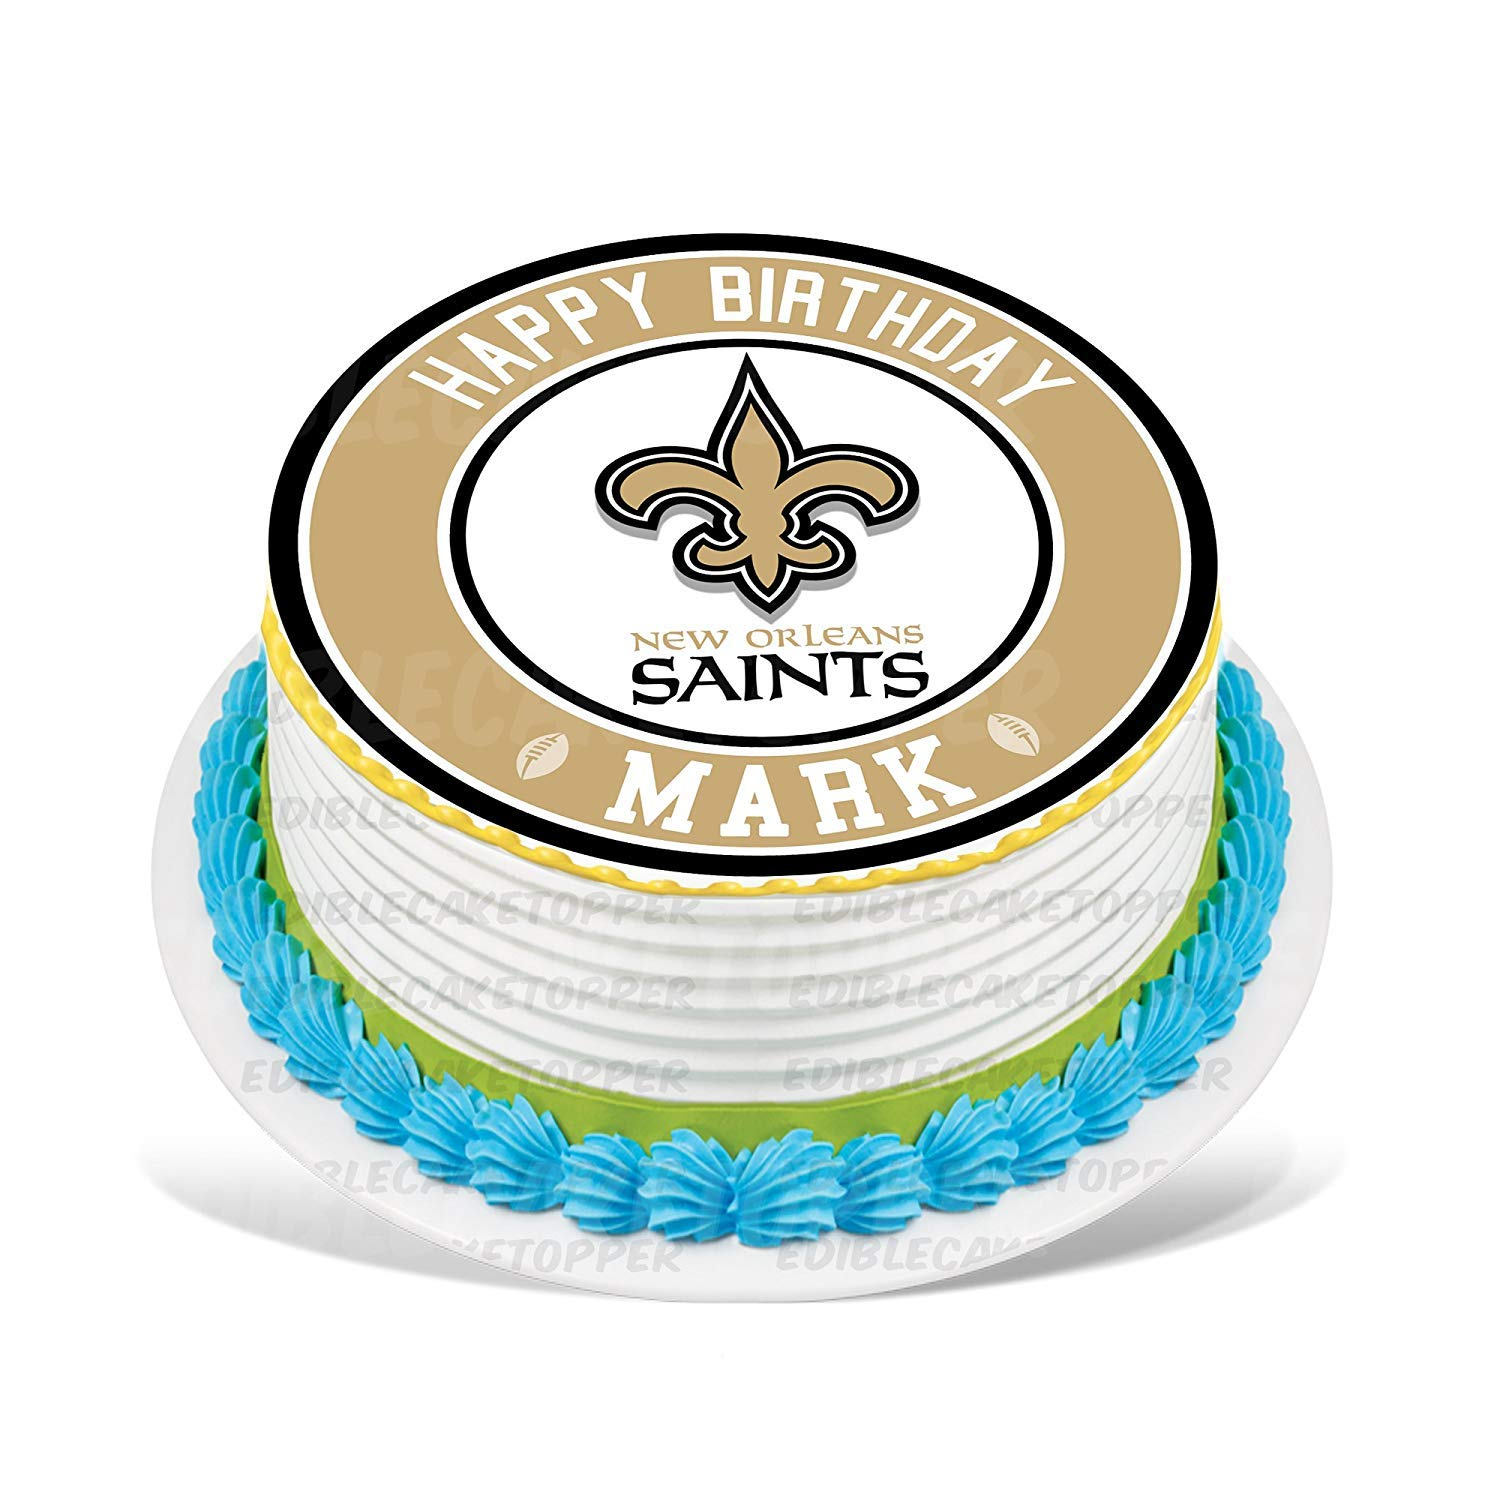 New Orleans Saints Edible Cake Topper Personalized Birthday 10 Round Circle Decoration Party Sugar Frosting Transfer Fondant Image Best Quality